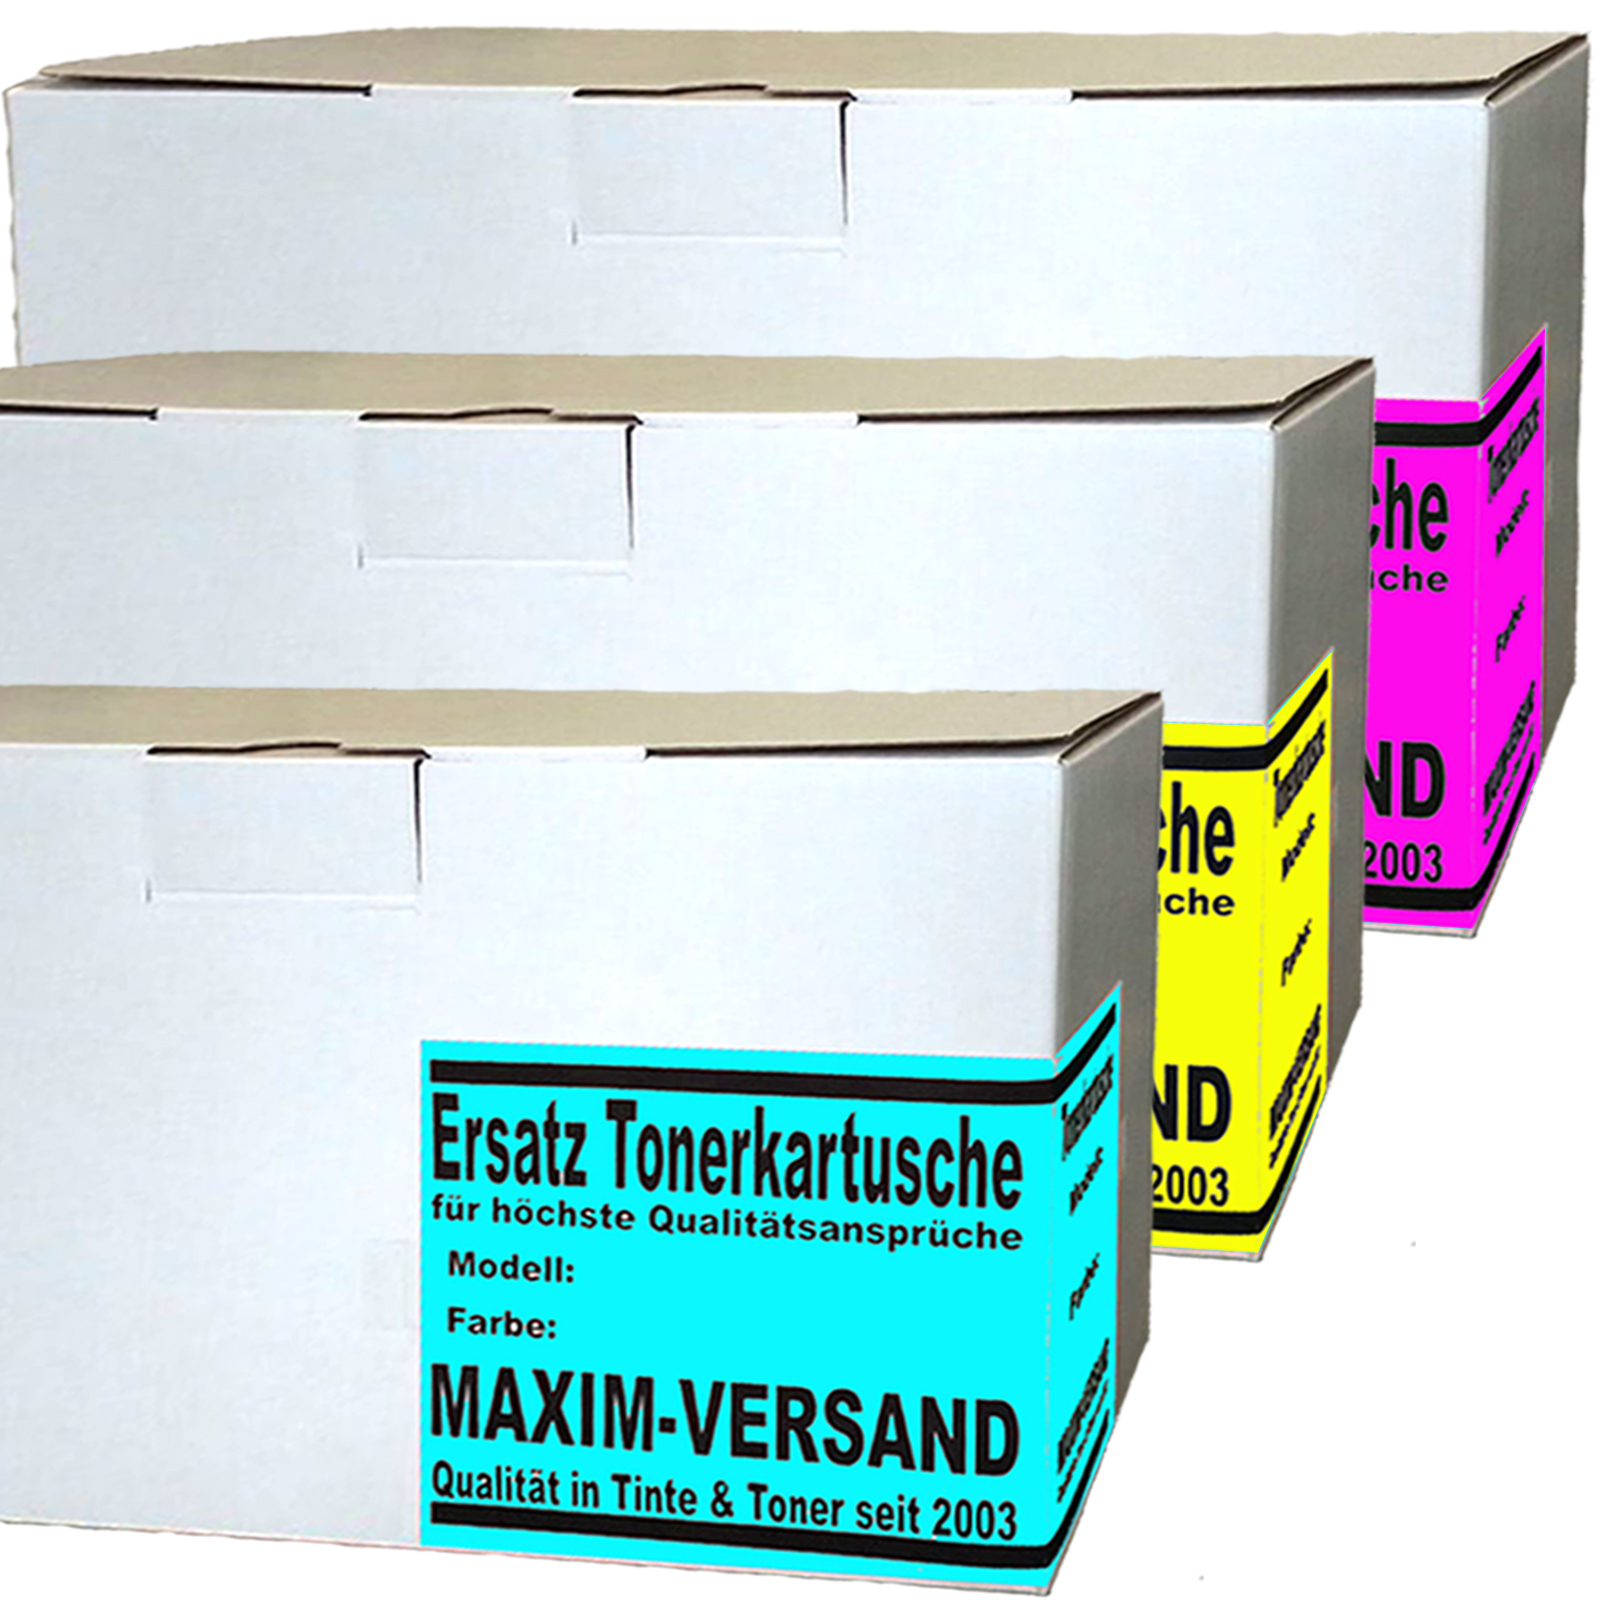 Brother TN-421 / TN-423 Cyan, Yellow, Magenta - Toner kompatibel (3er Farb-Set)